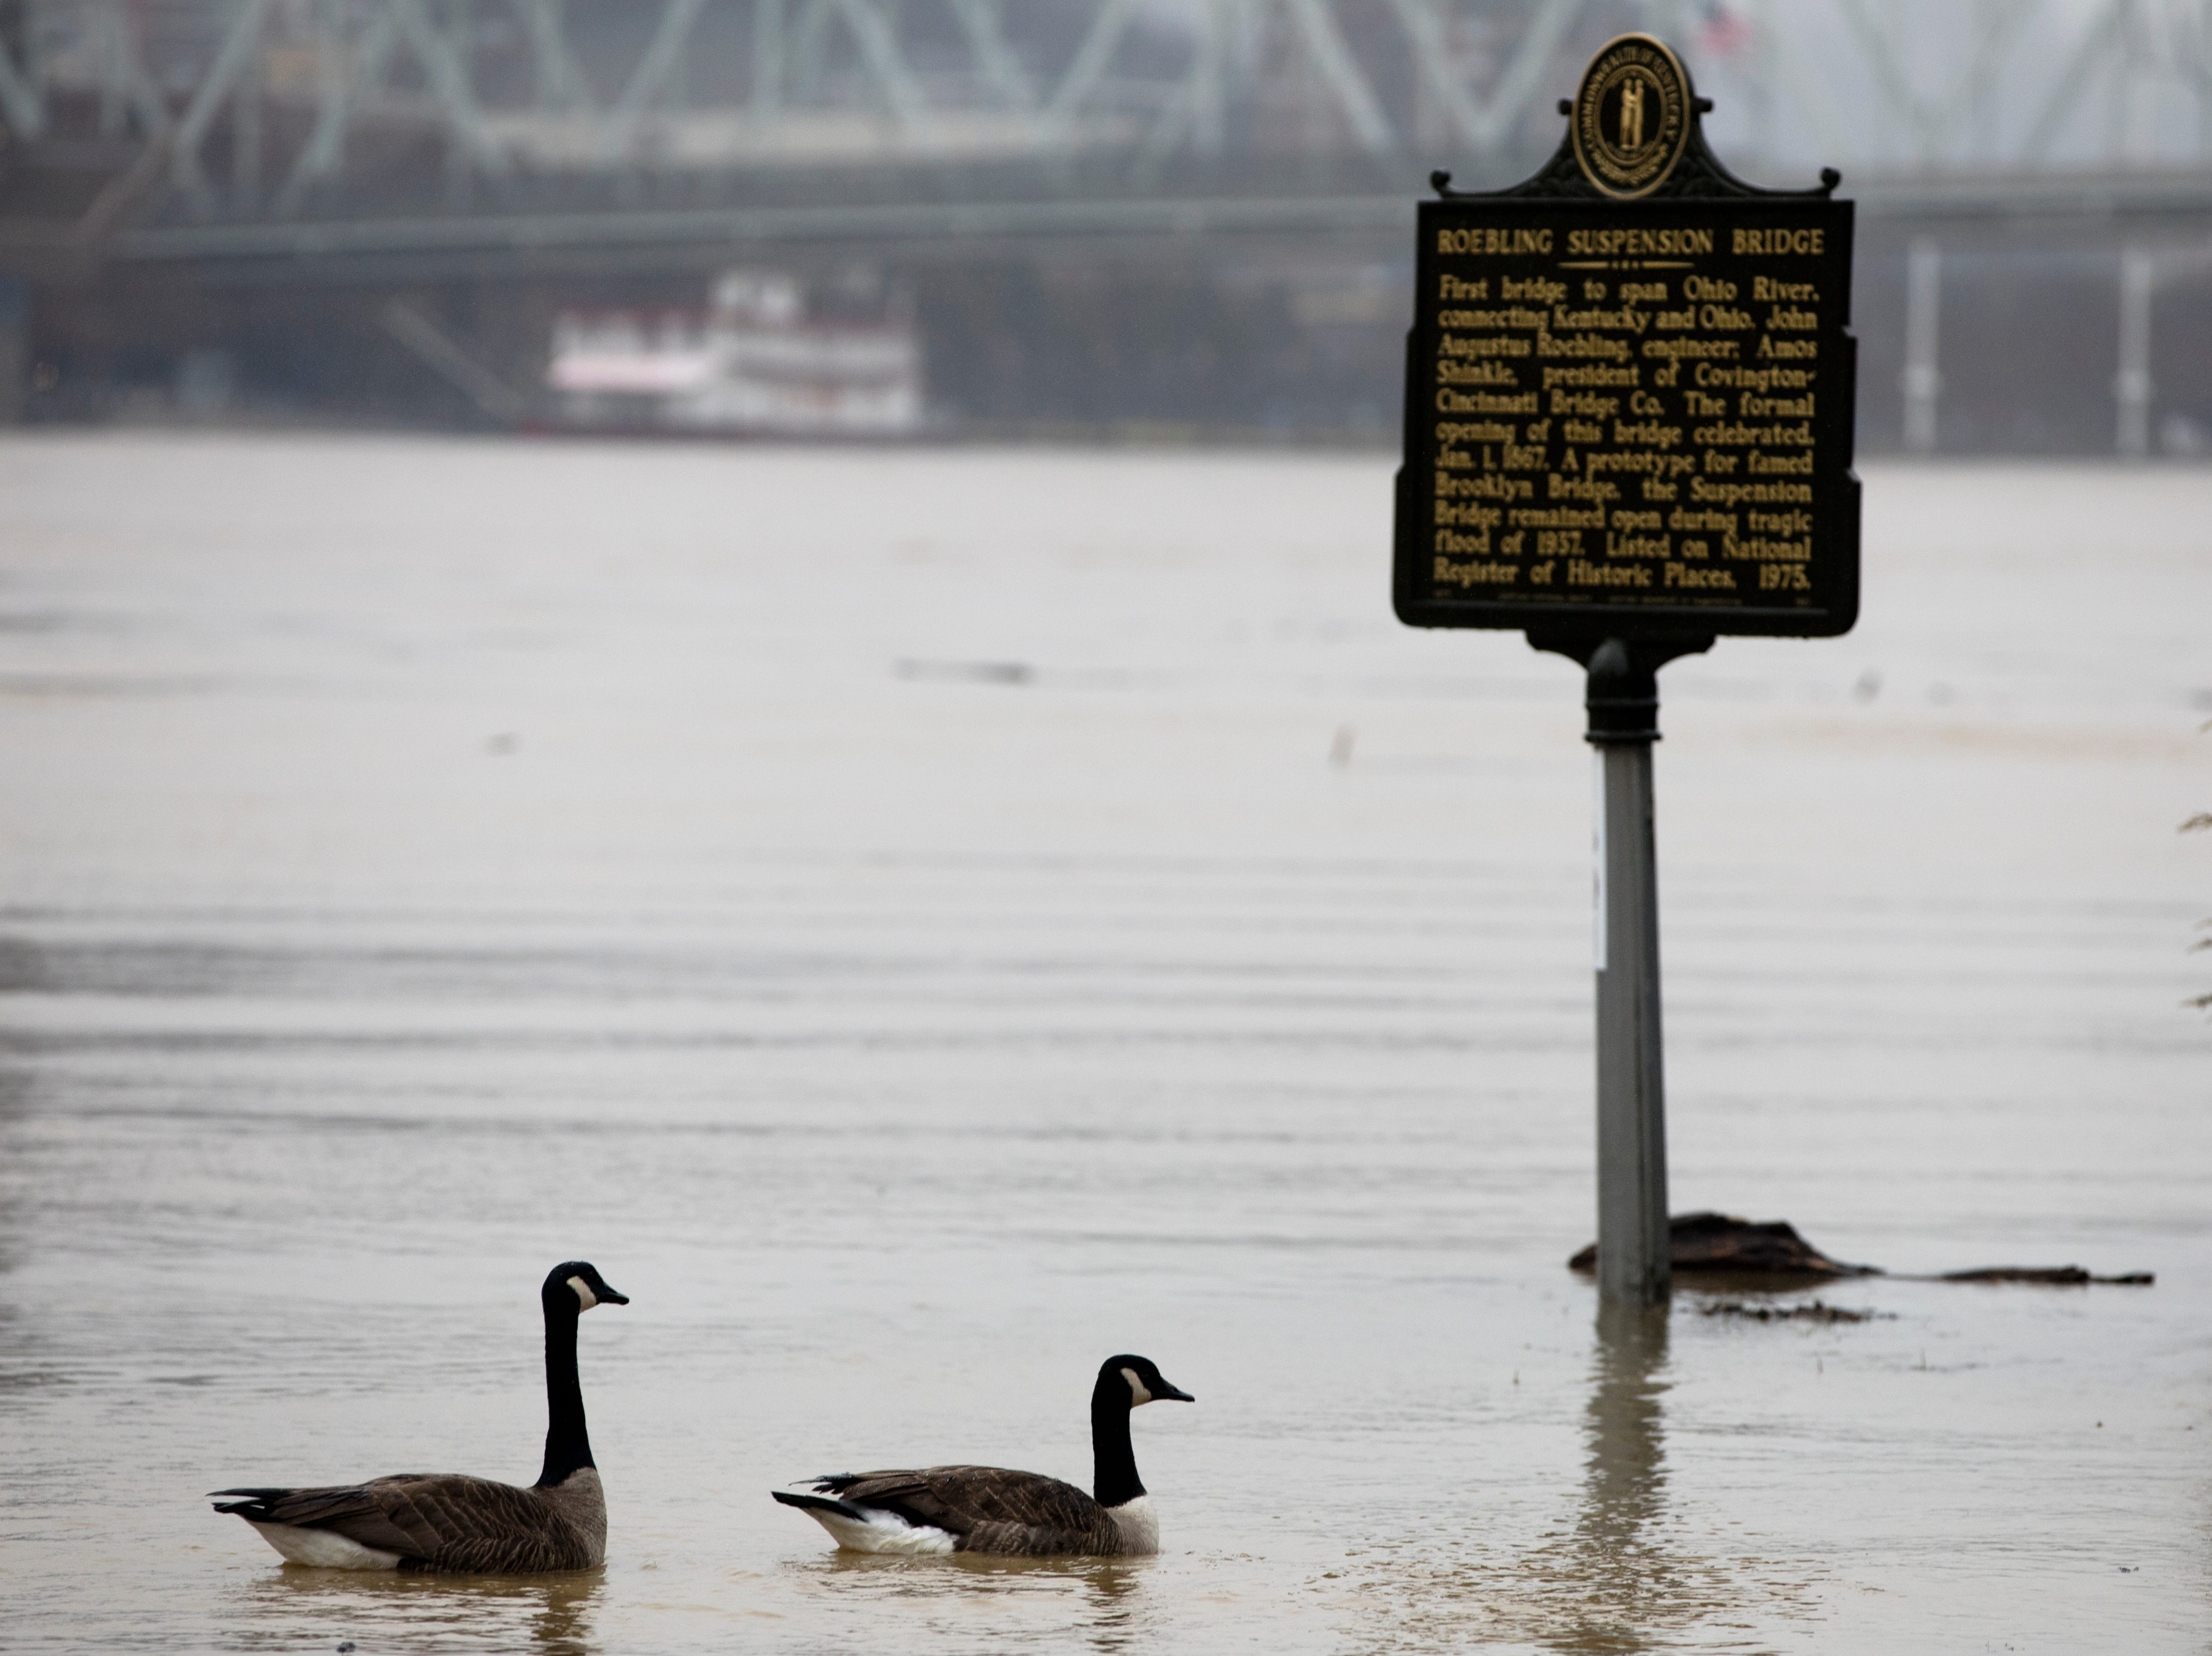 Geese swim on Riverside Place in Covington on Tuesday, Feb. 12, 2019. The Ohio River is expected to crest at 56.3 feet at 1 a.m. Wednesday, Feb. 13.